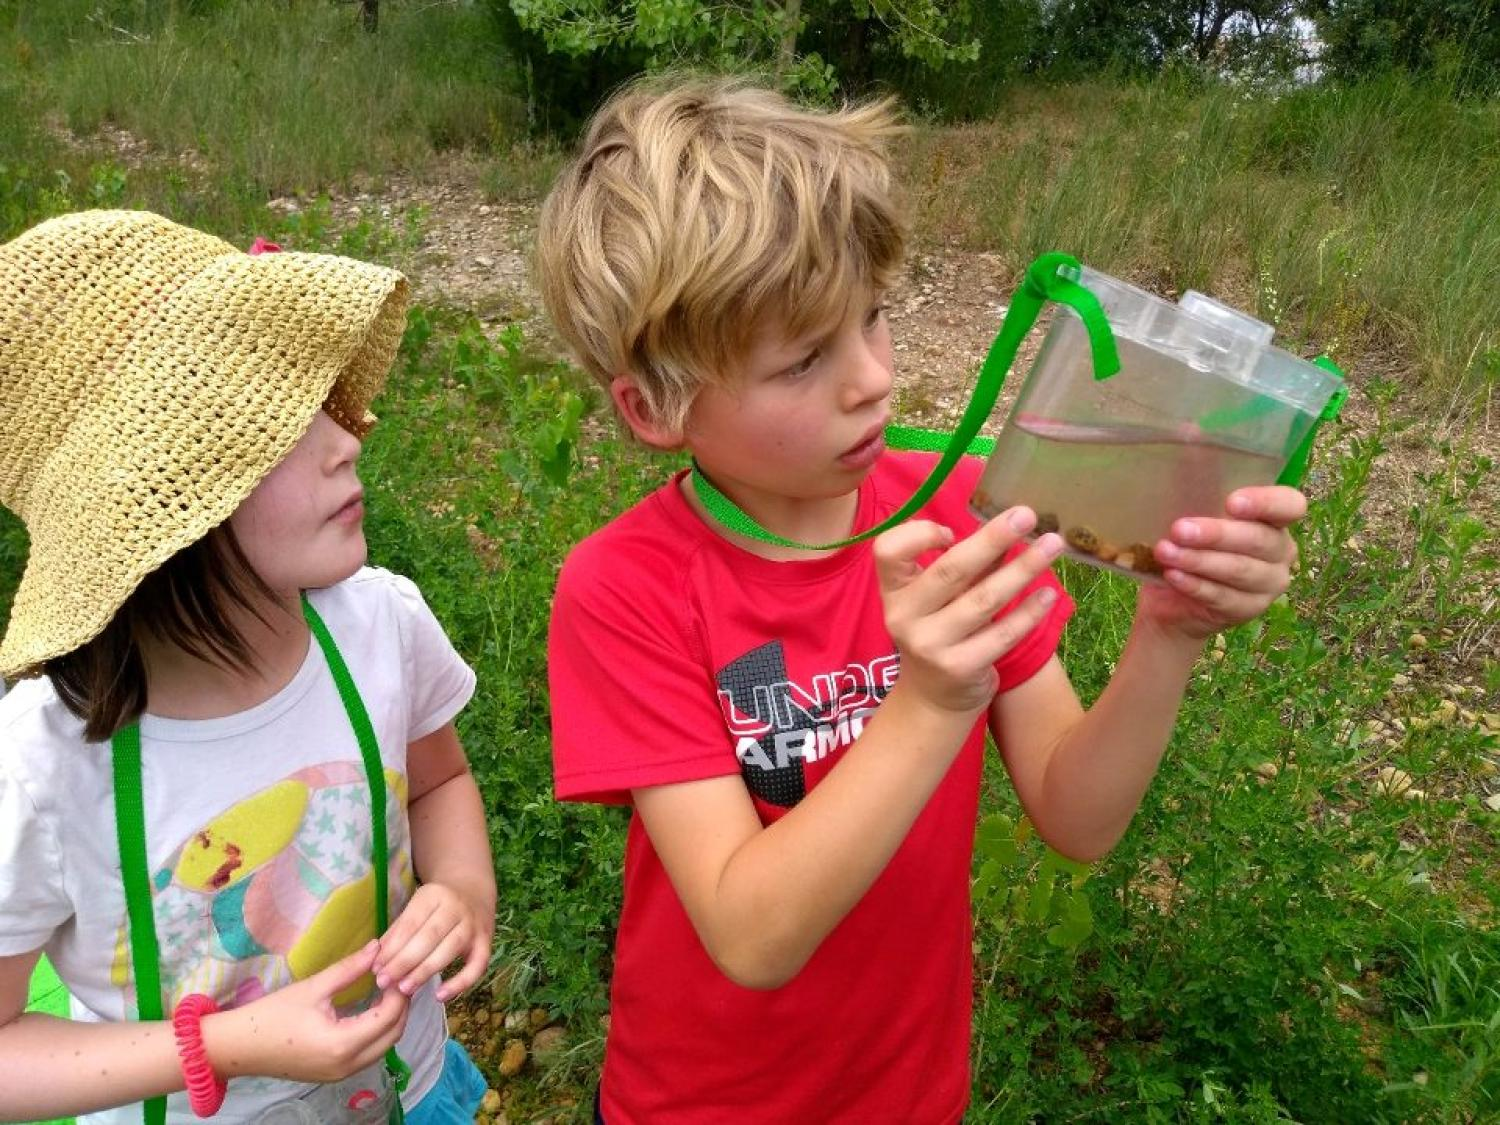 two kids overseeing the pond life they caught